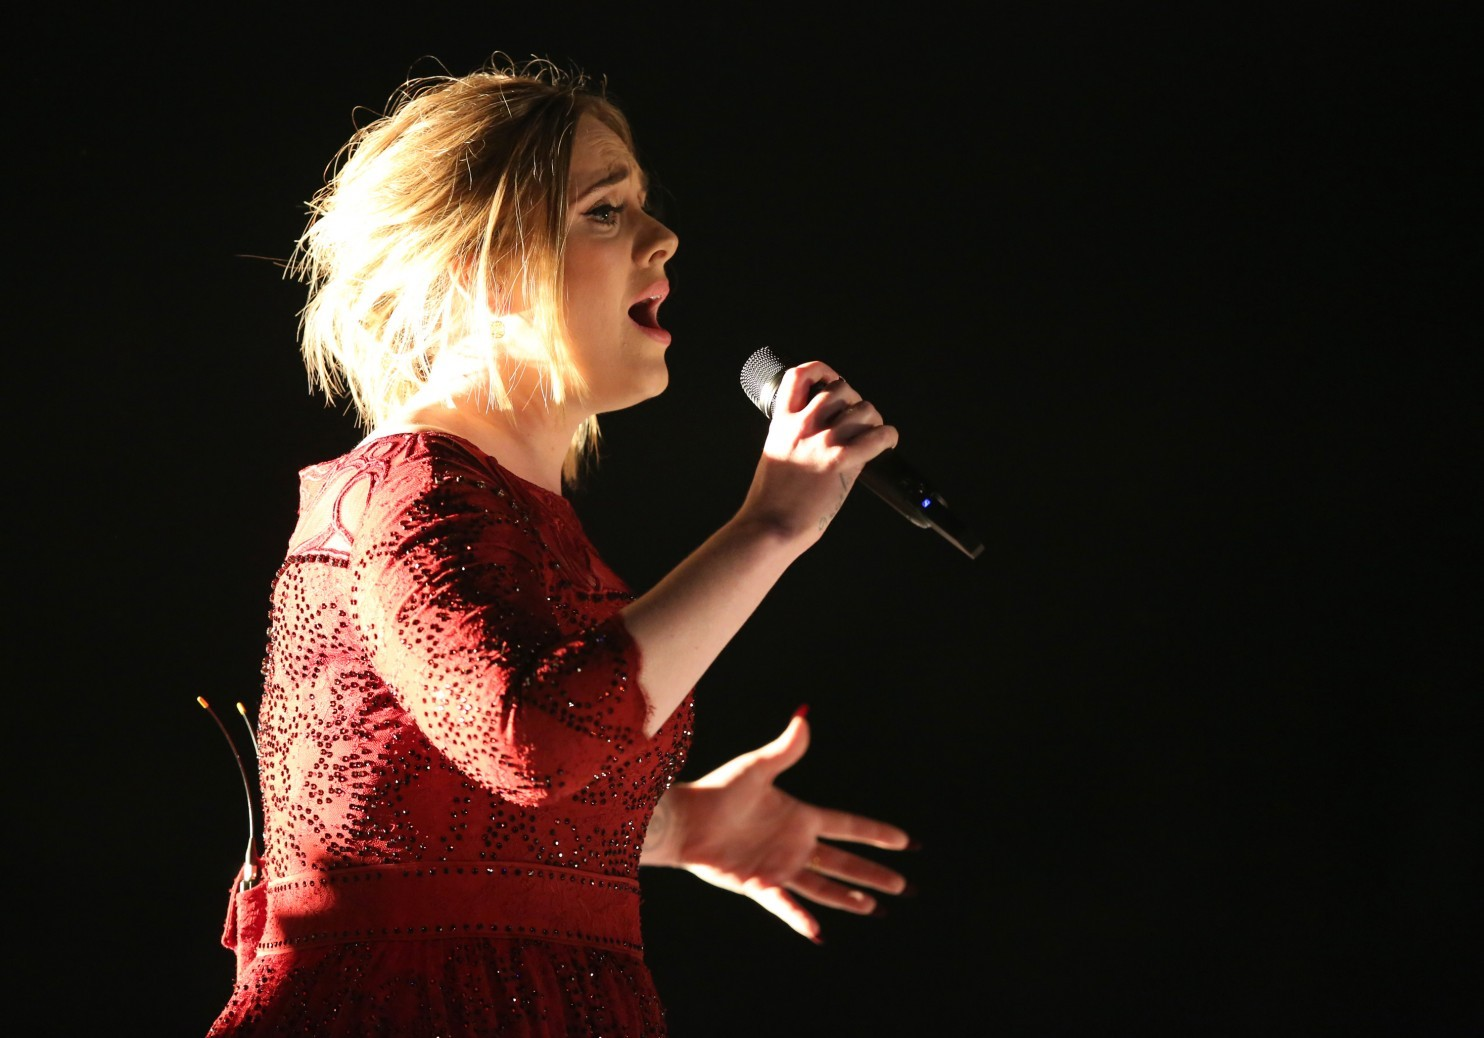 Adele Performing at The 58th Annual Grammy Awards Show